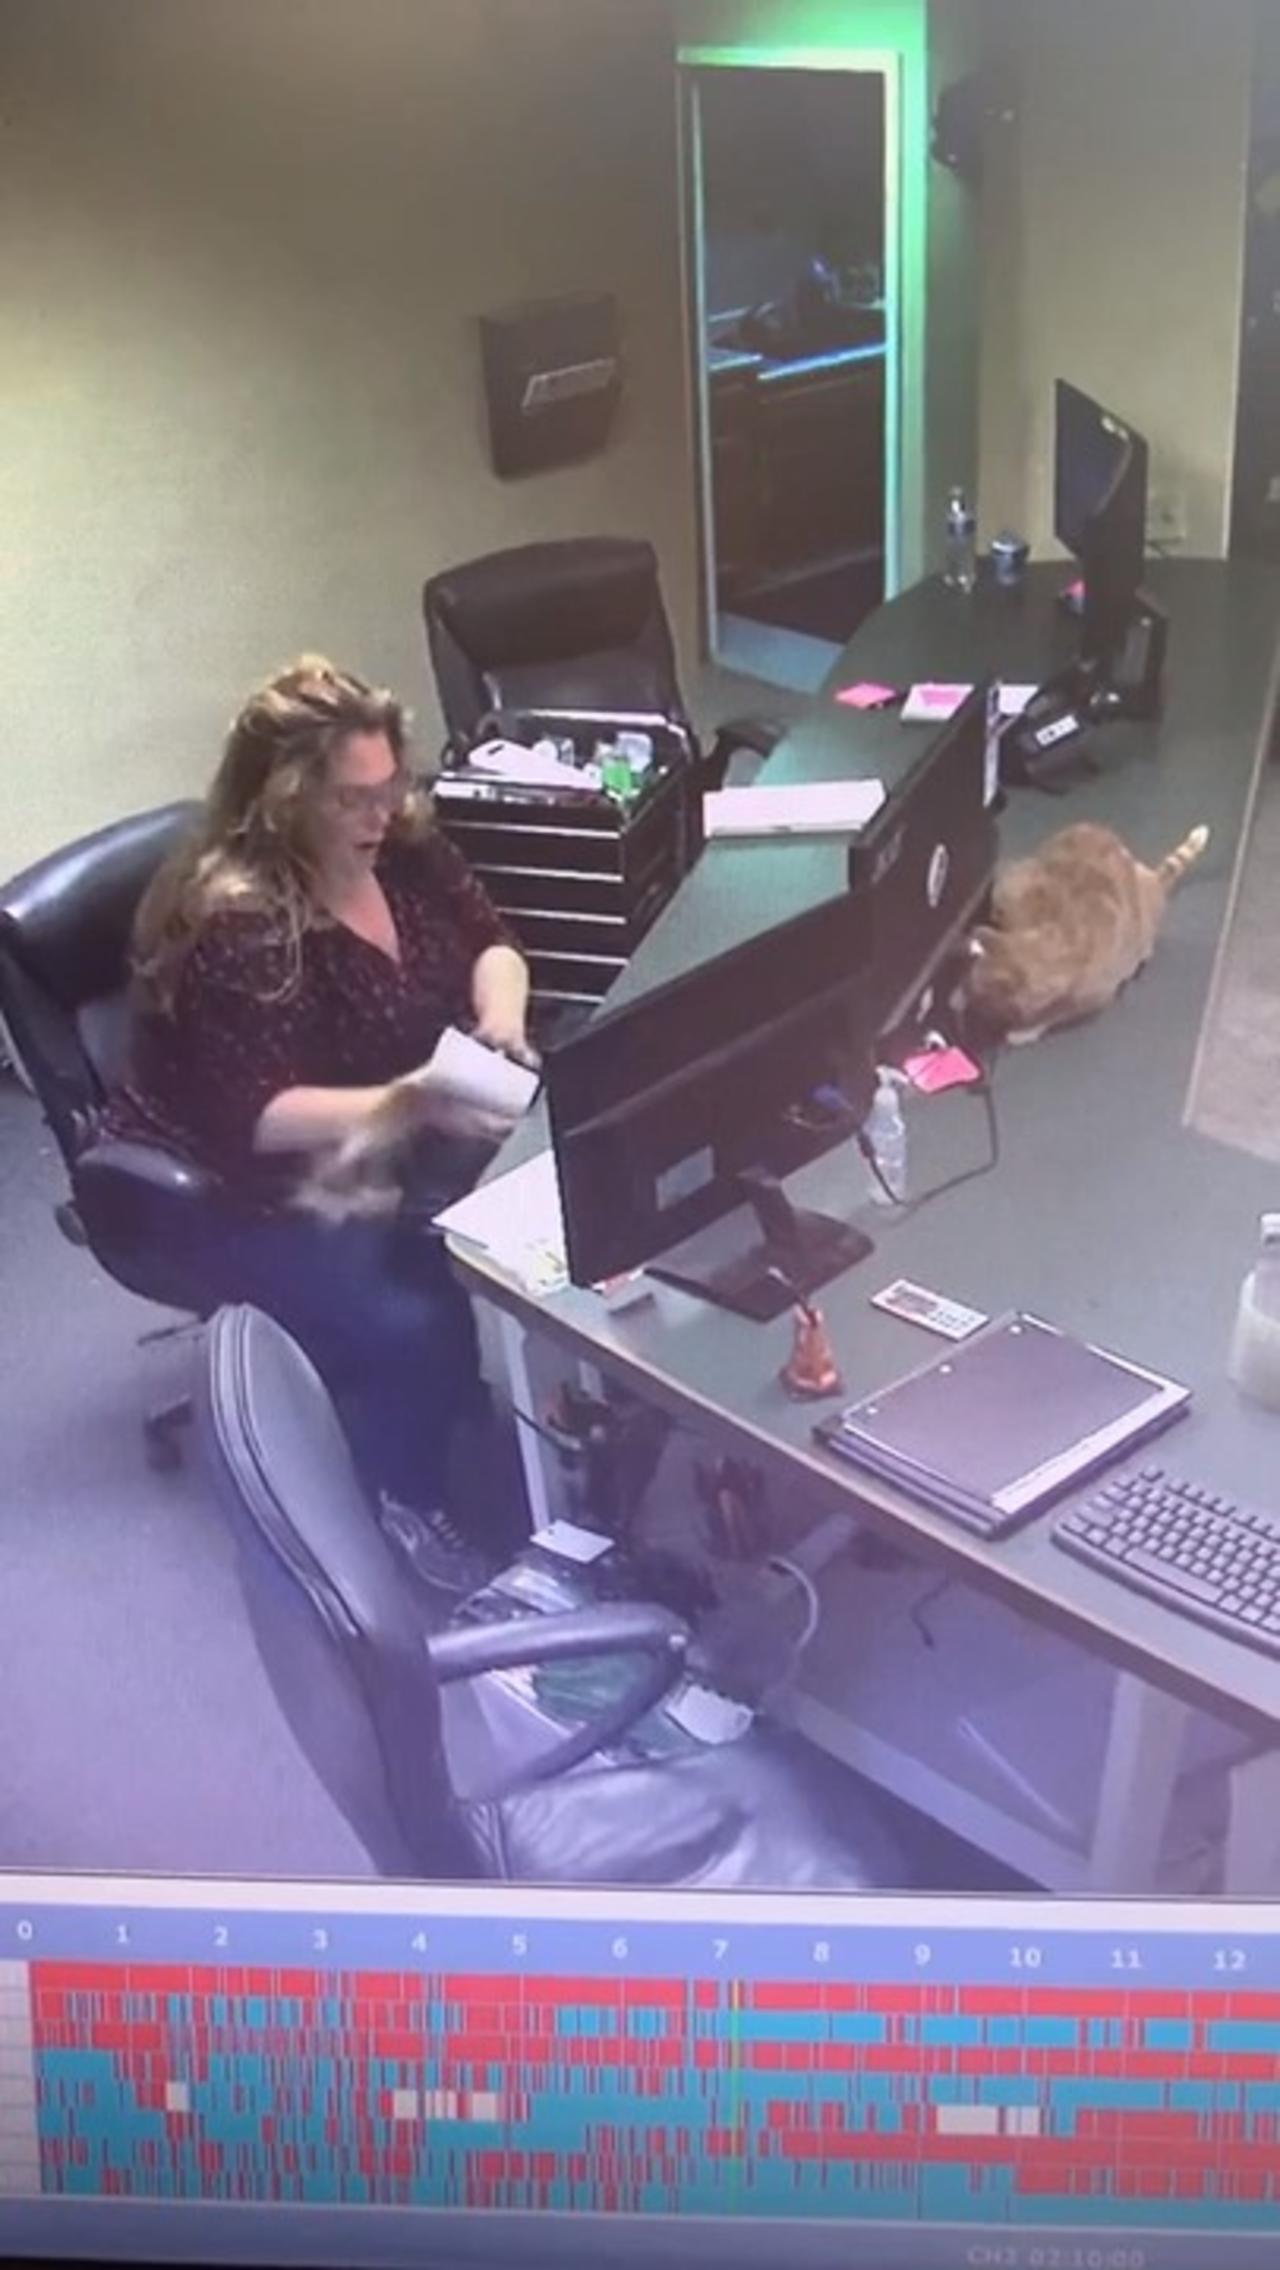 Sneaky Office Cat Knocks Over Cup From Under Computer Screen And Spills Coffee on Woman